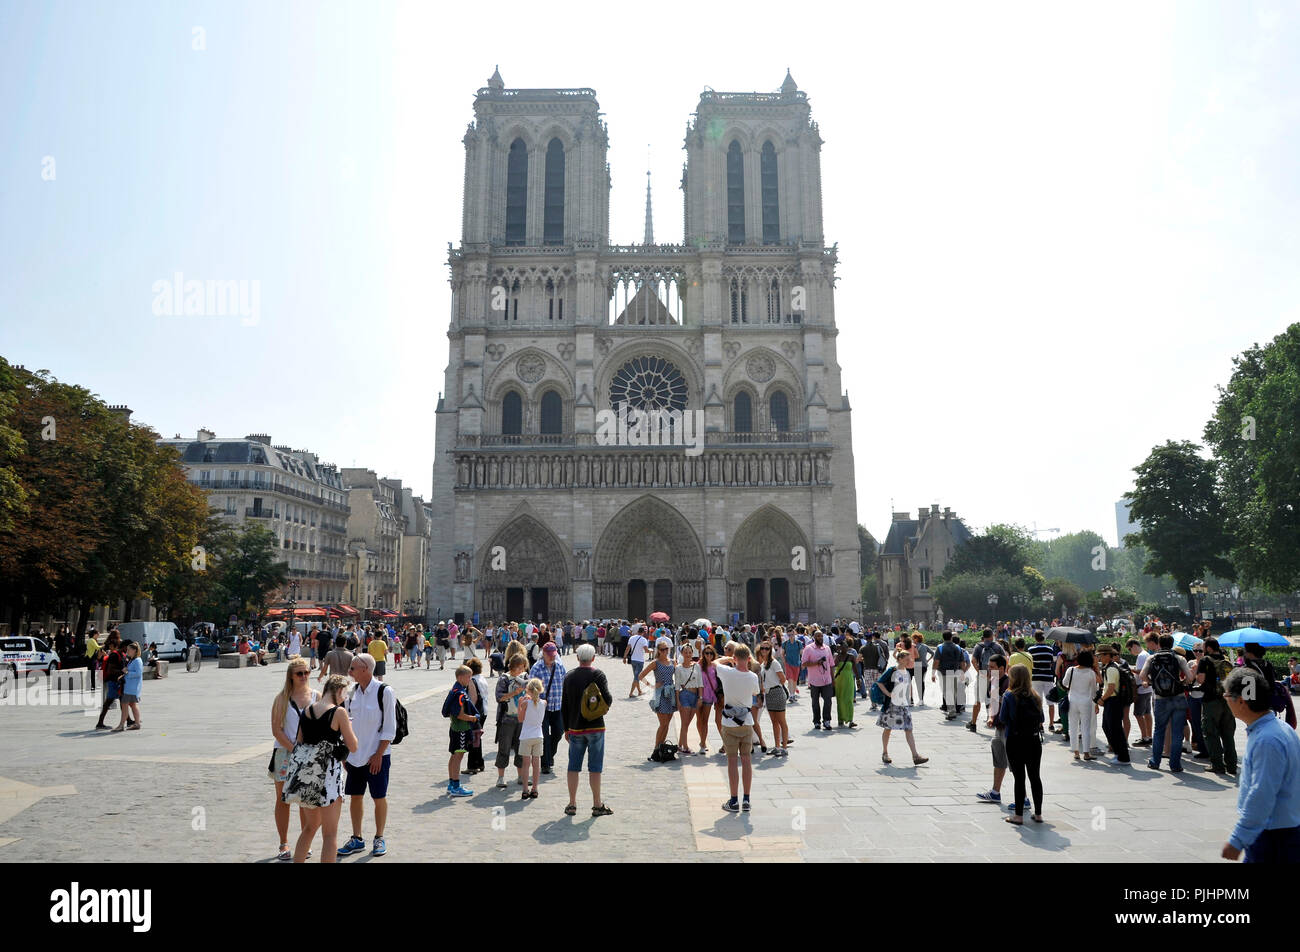 France, Paris city, Ile de la Cite, Notre-Dame cathedral, visitors to the square in front of the monument. - Stock Image